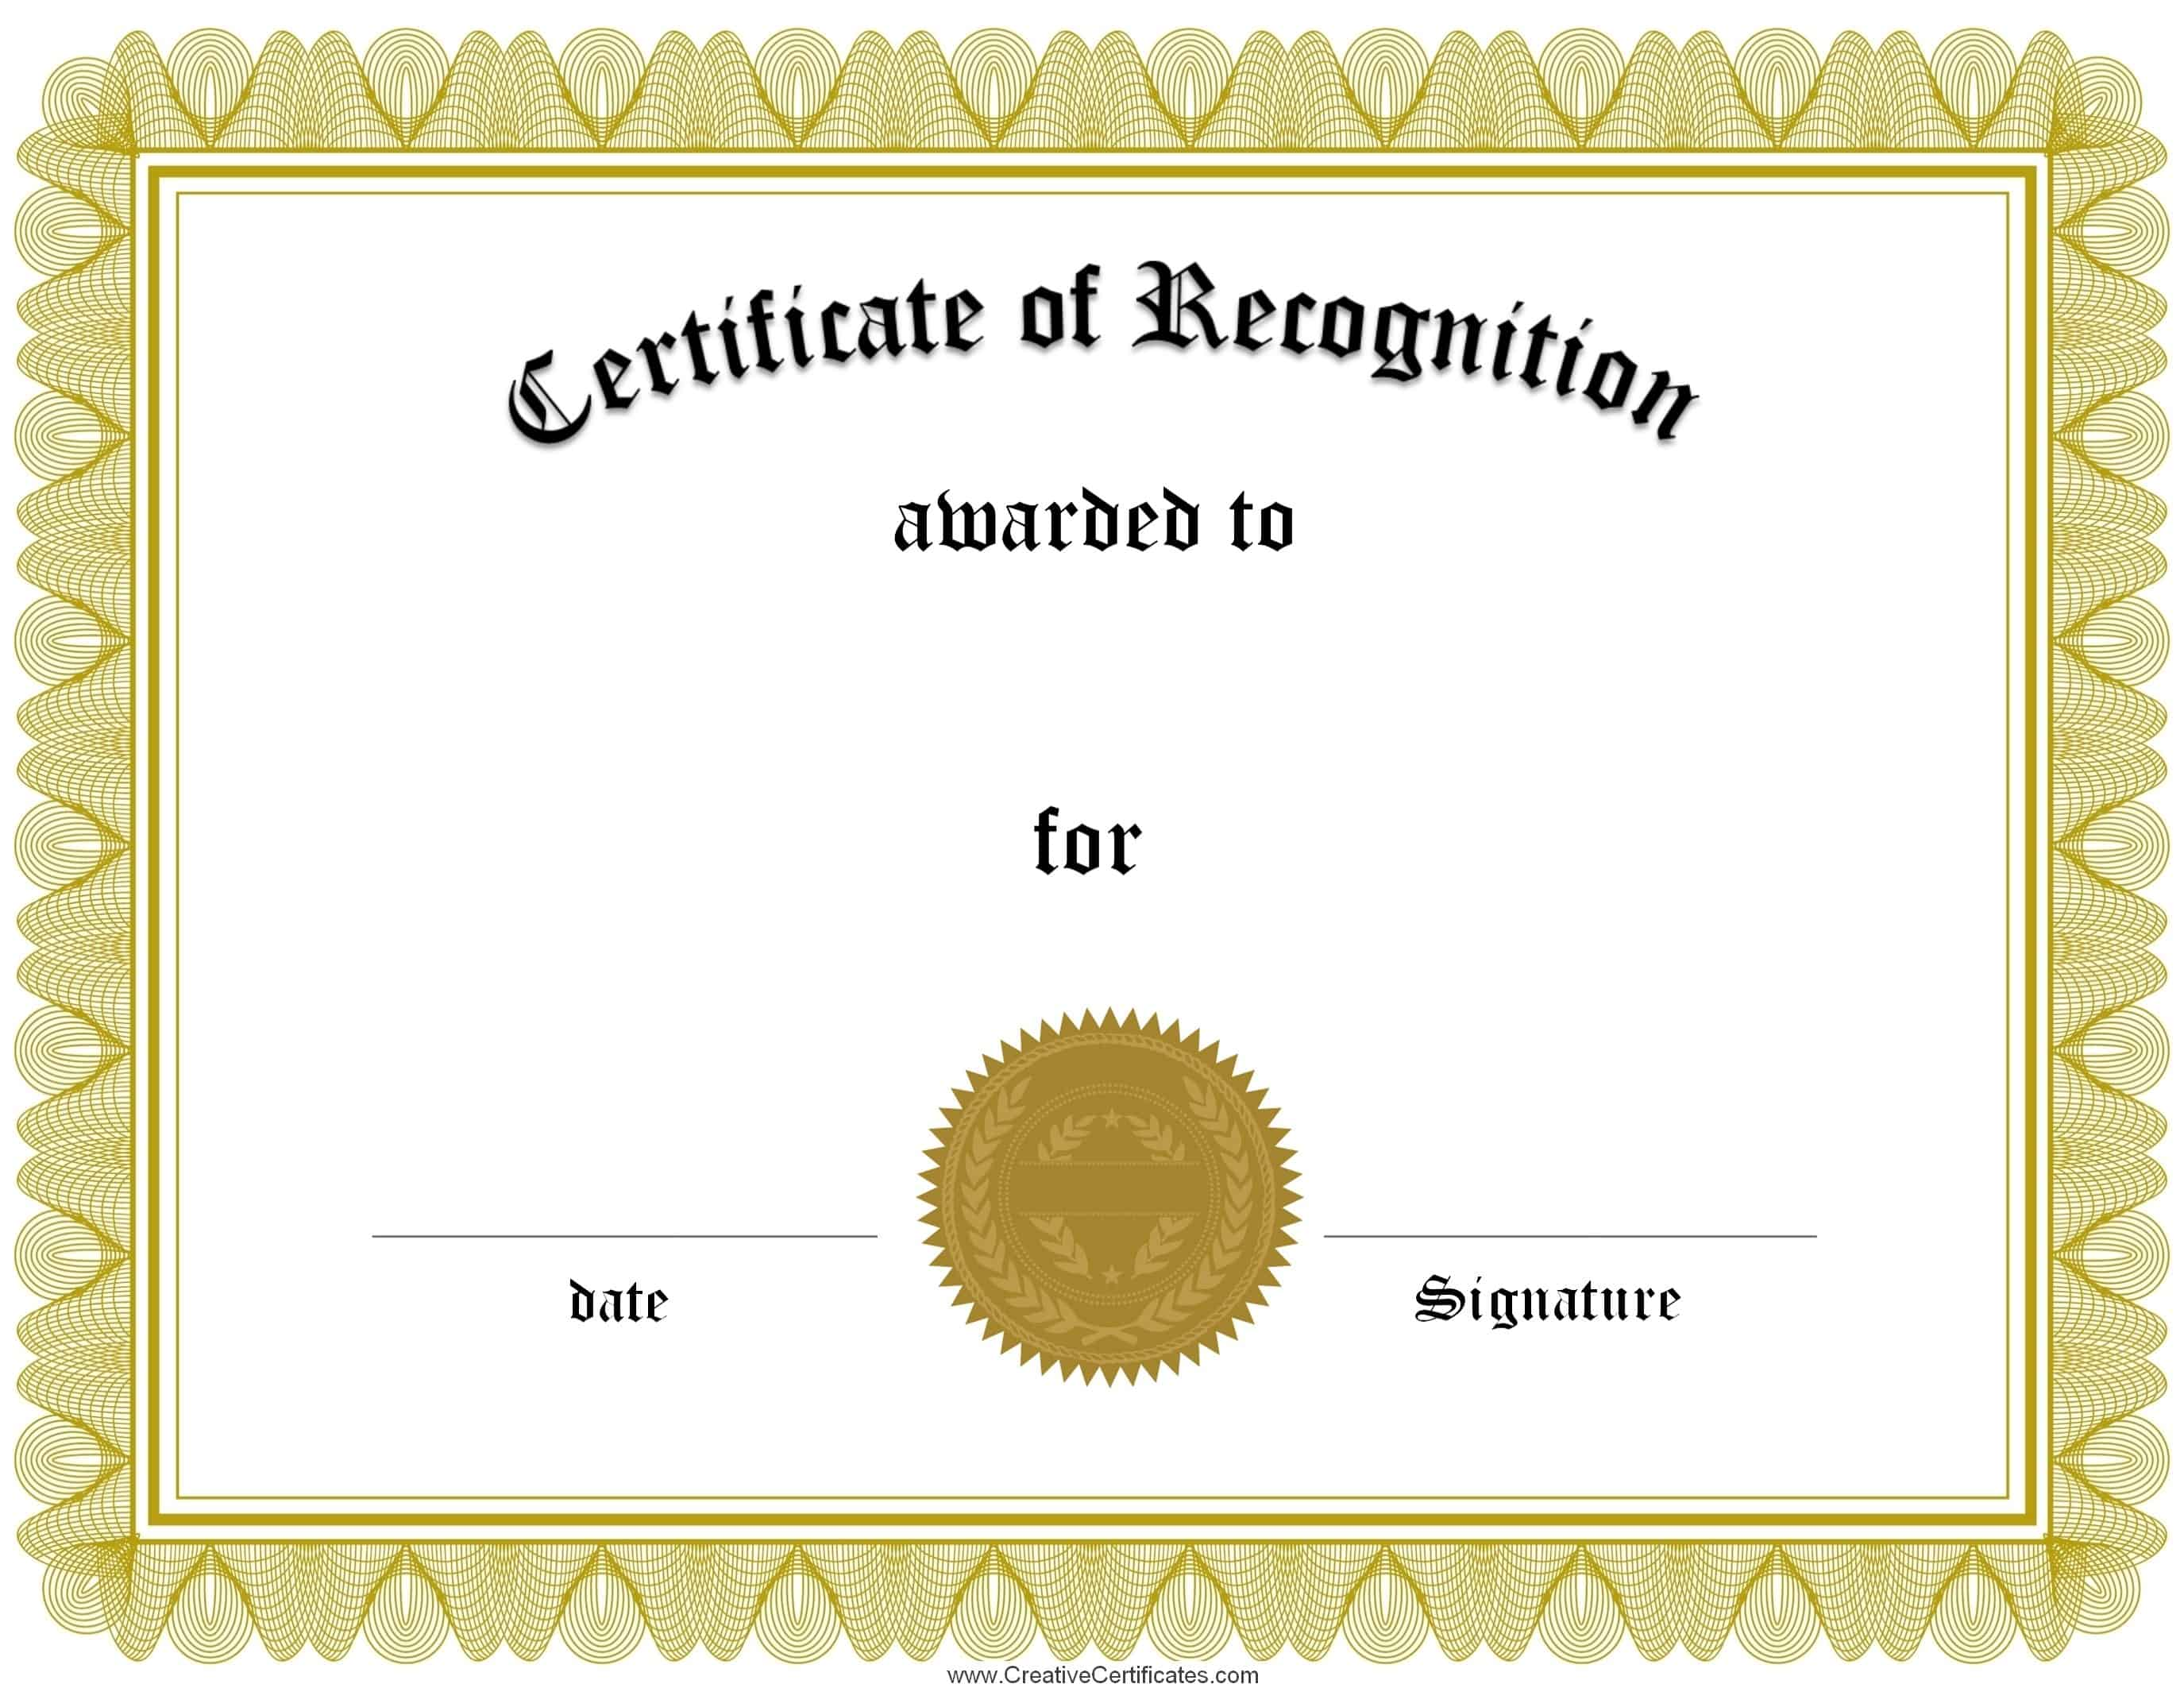 free printable templates for certificates of recognition - free certificate of recognition template customize online